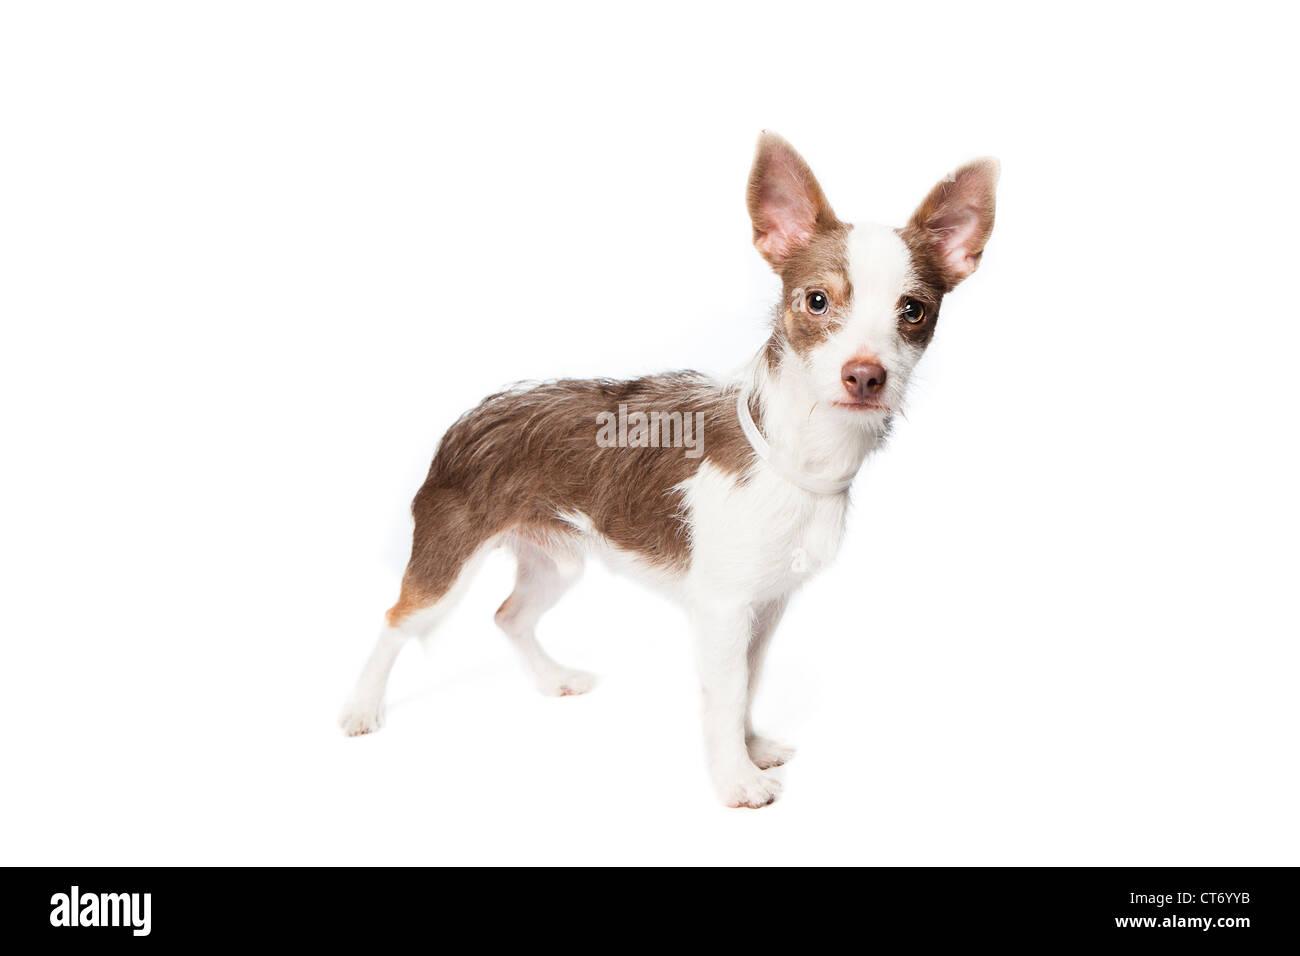 A white and tan wire haired terrier over a white background - Stock Image